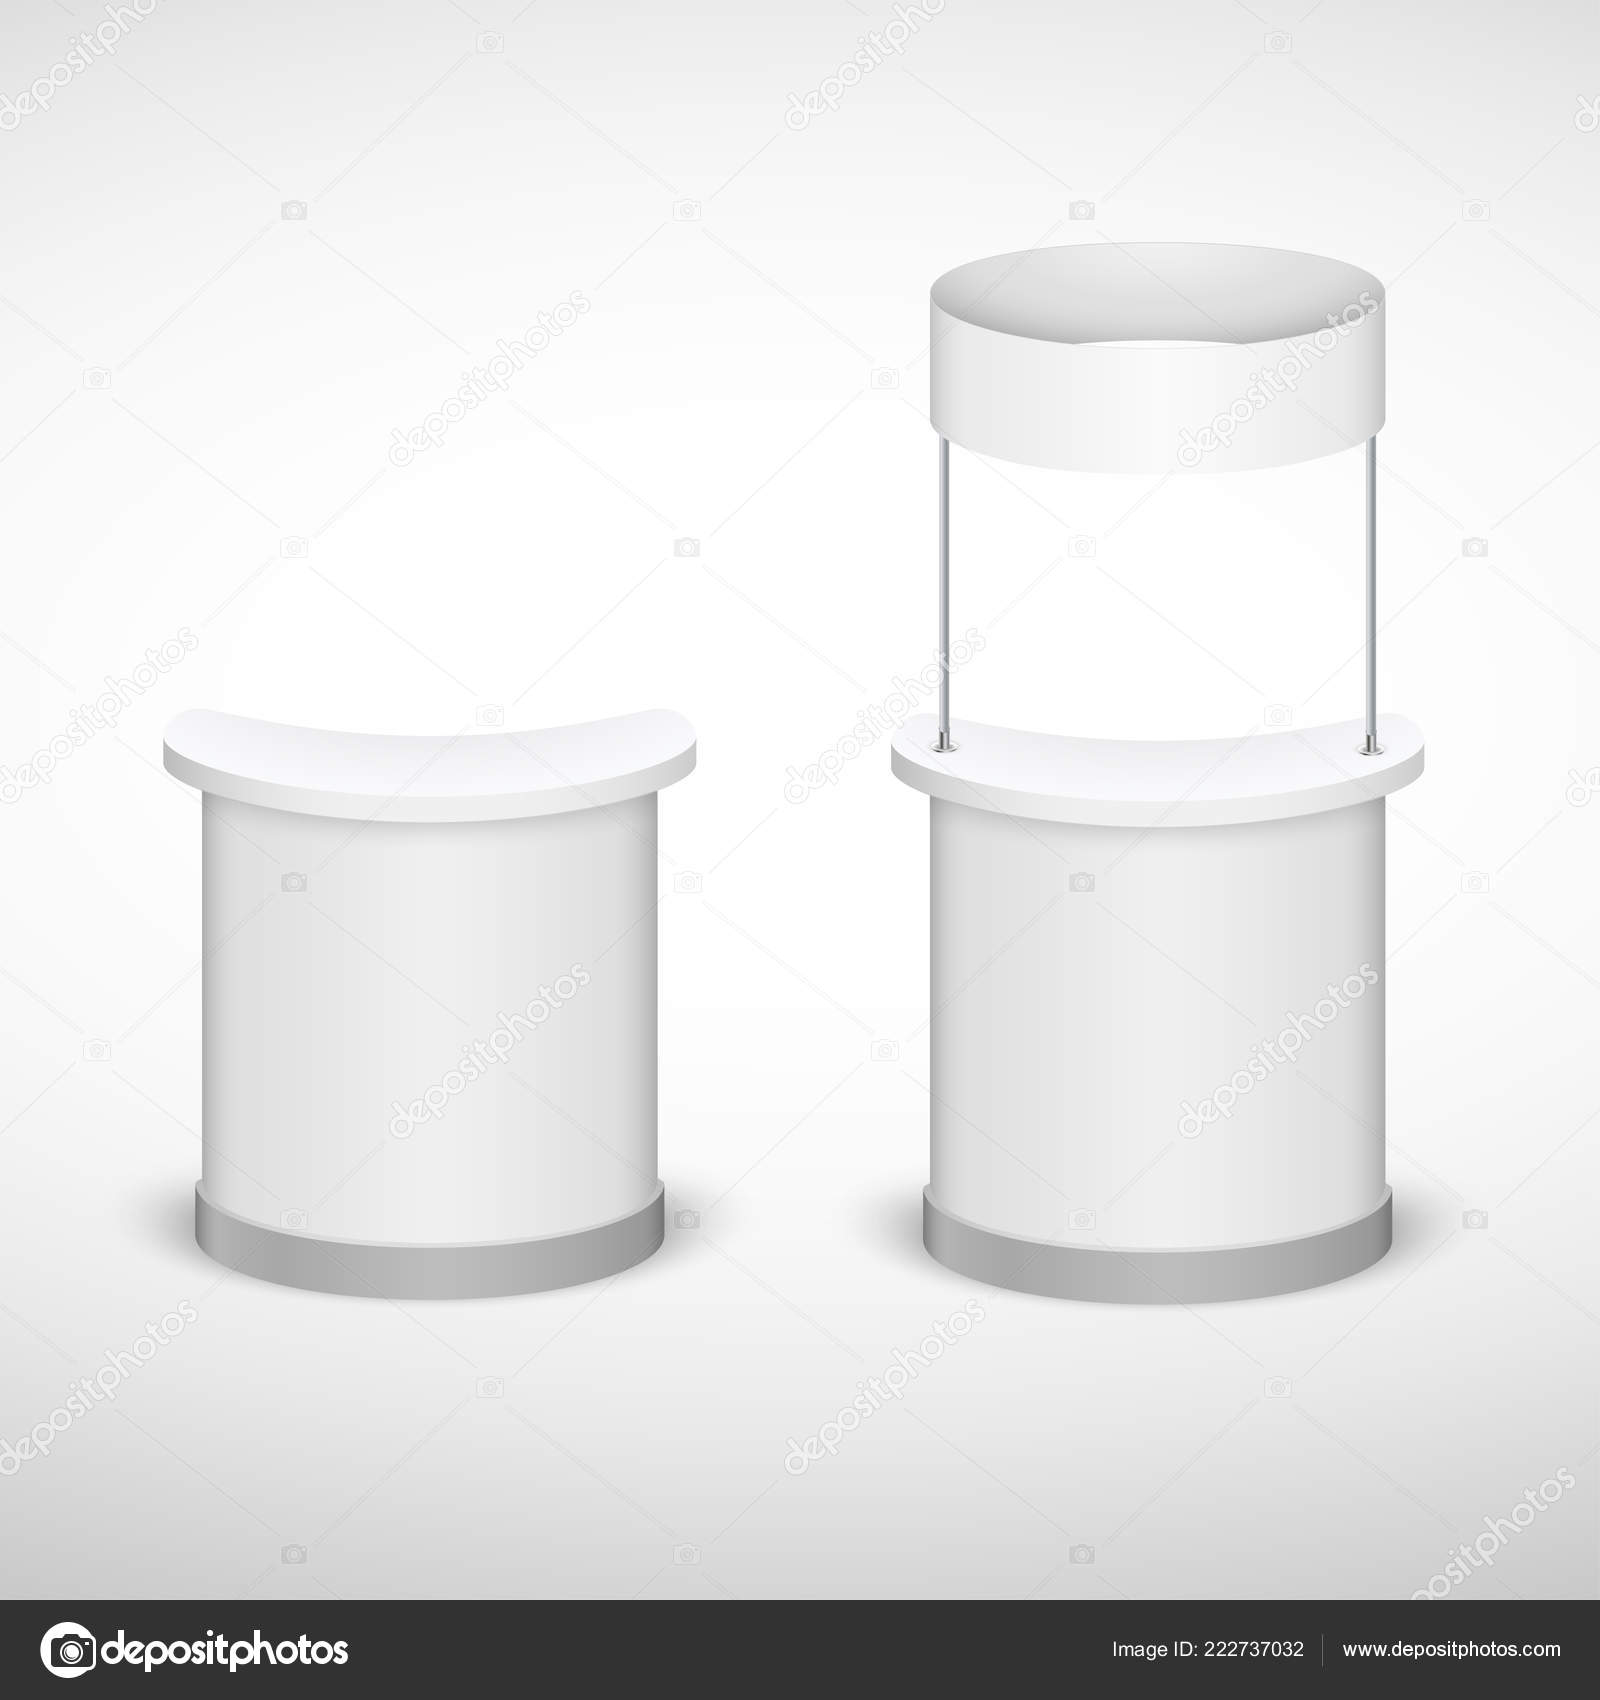 Trade Exhibition Stand Mockup Free : Trade exhibition stand mock up isolated on white background. white